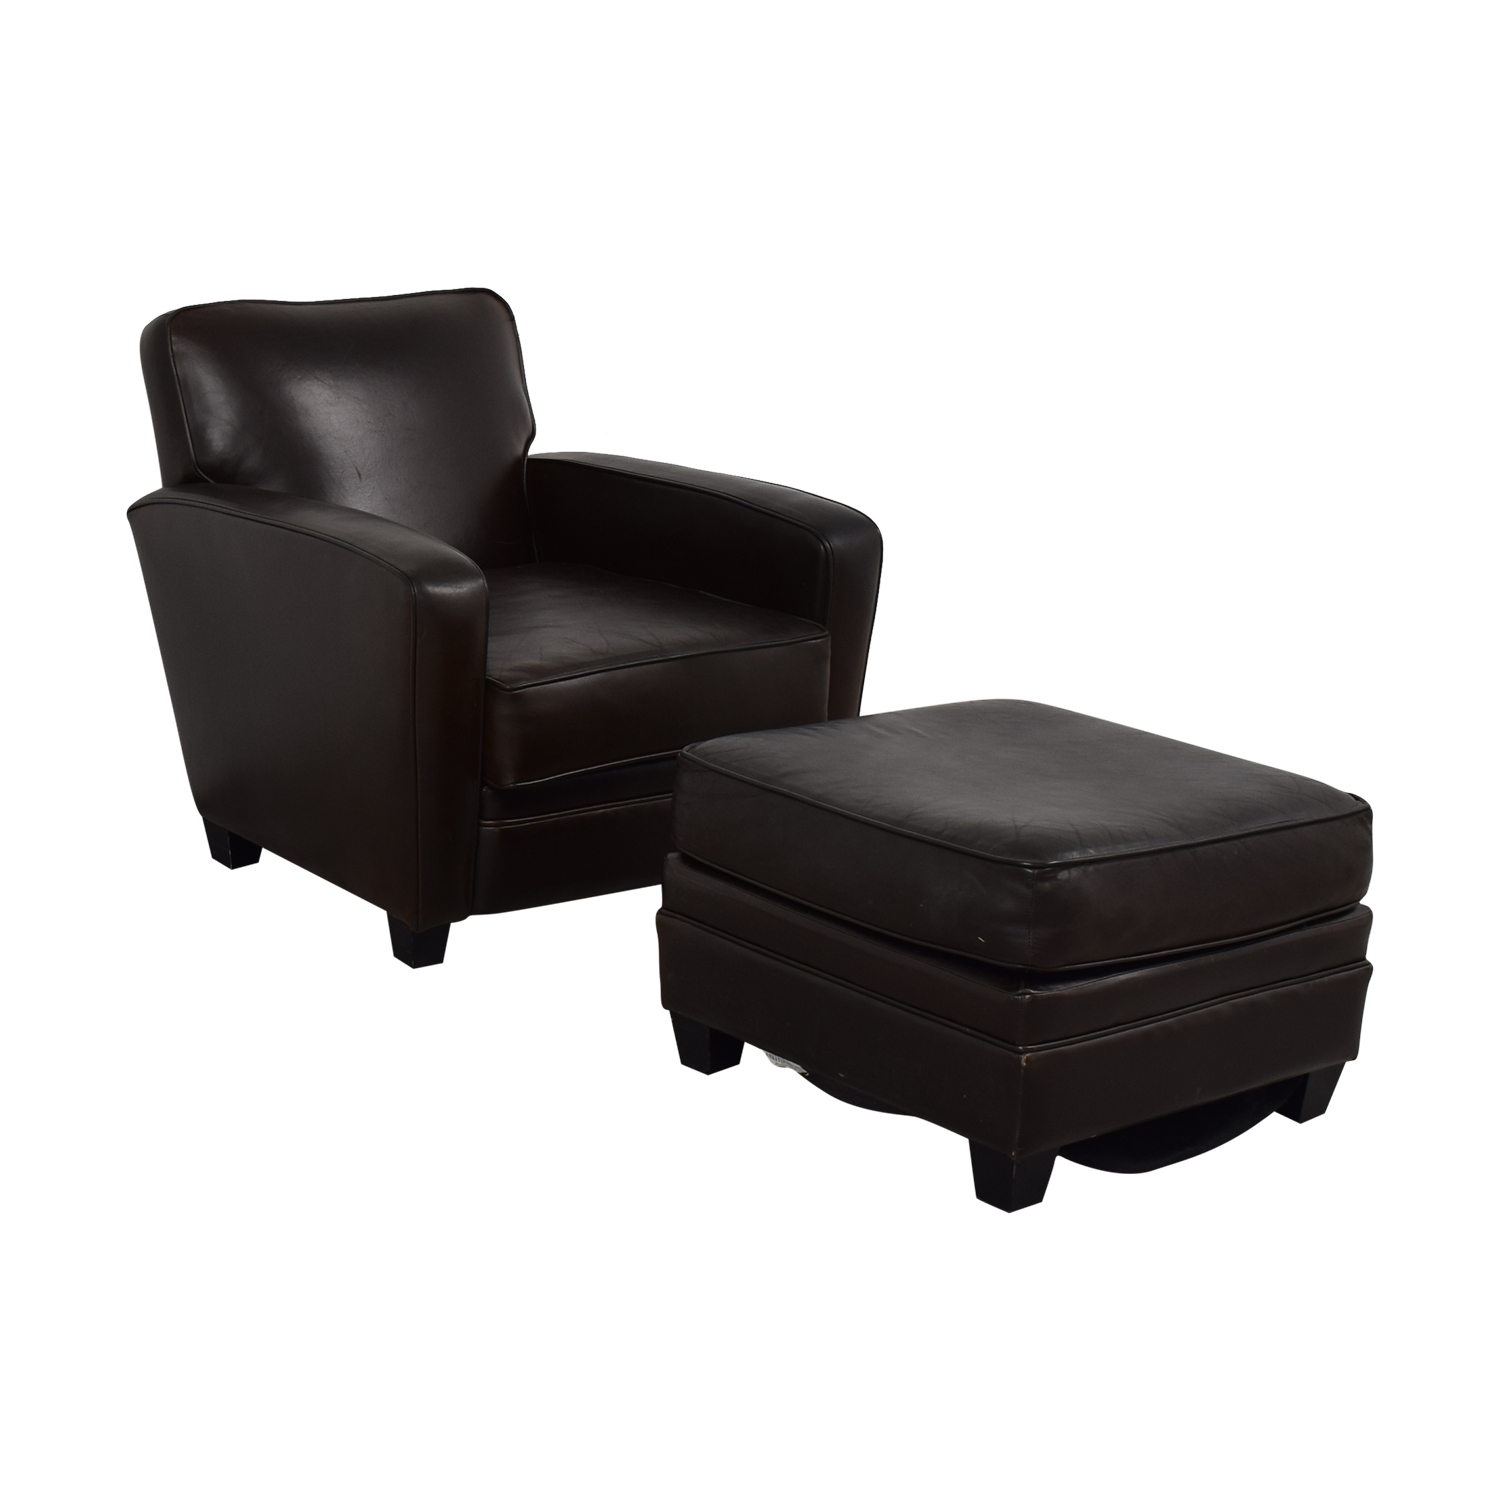 Discount Leather Chairs 86 Off Brown Leather Chair And Ottoman Chairs